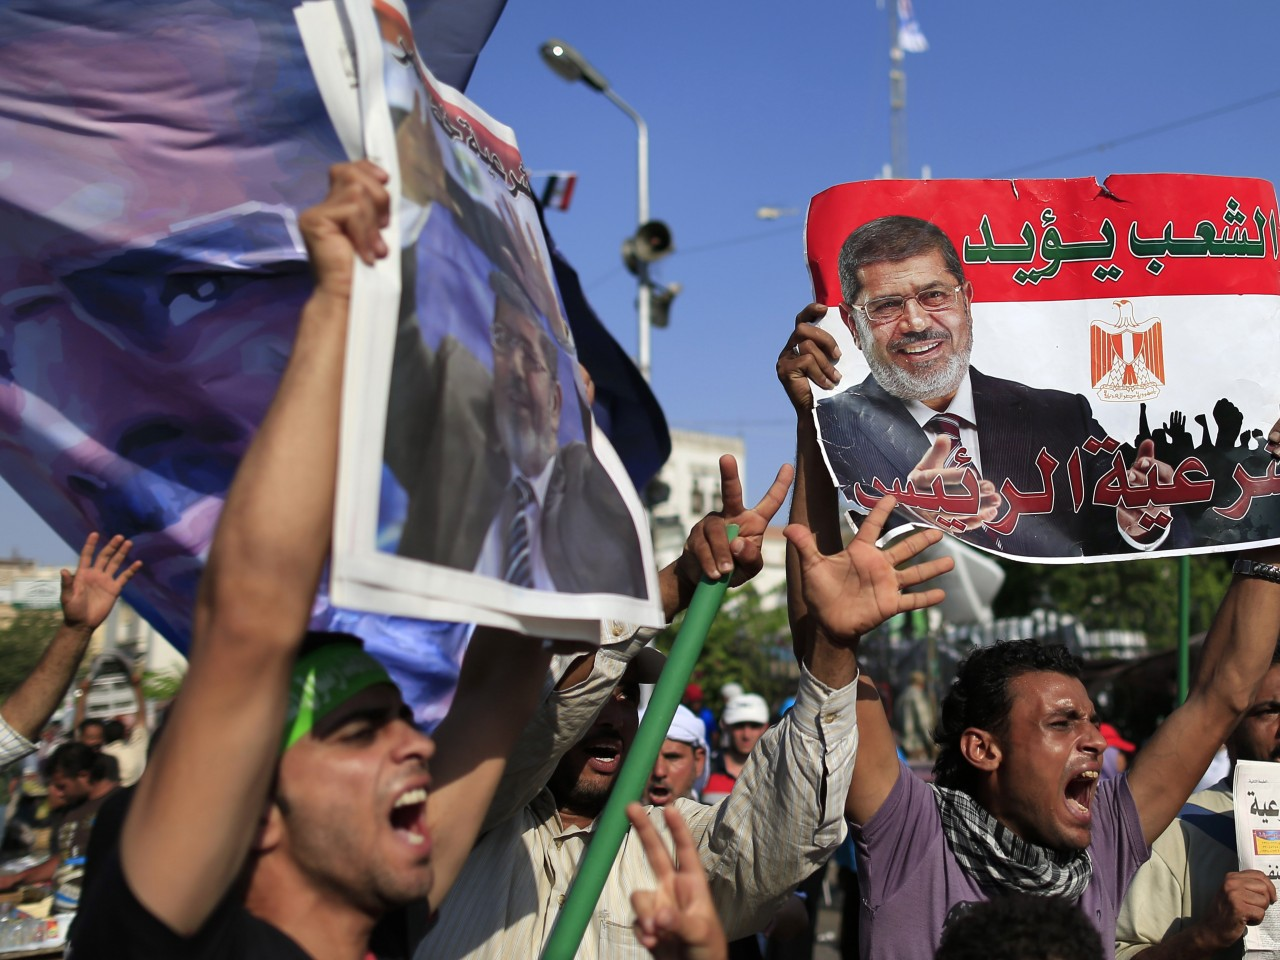 Egypt freezes assets of Muslim Brotherhood charities